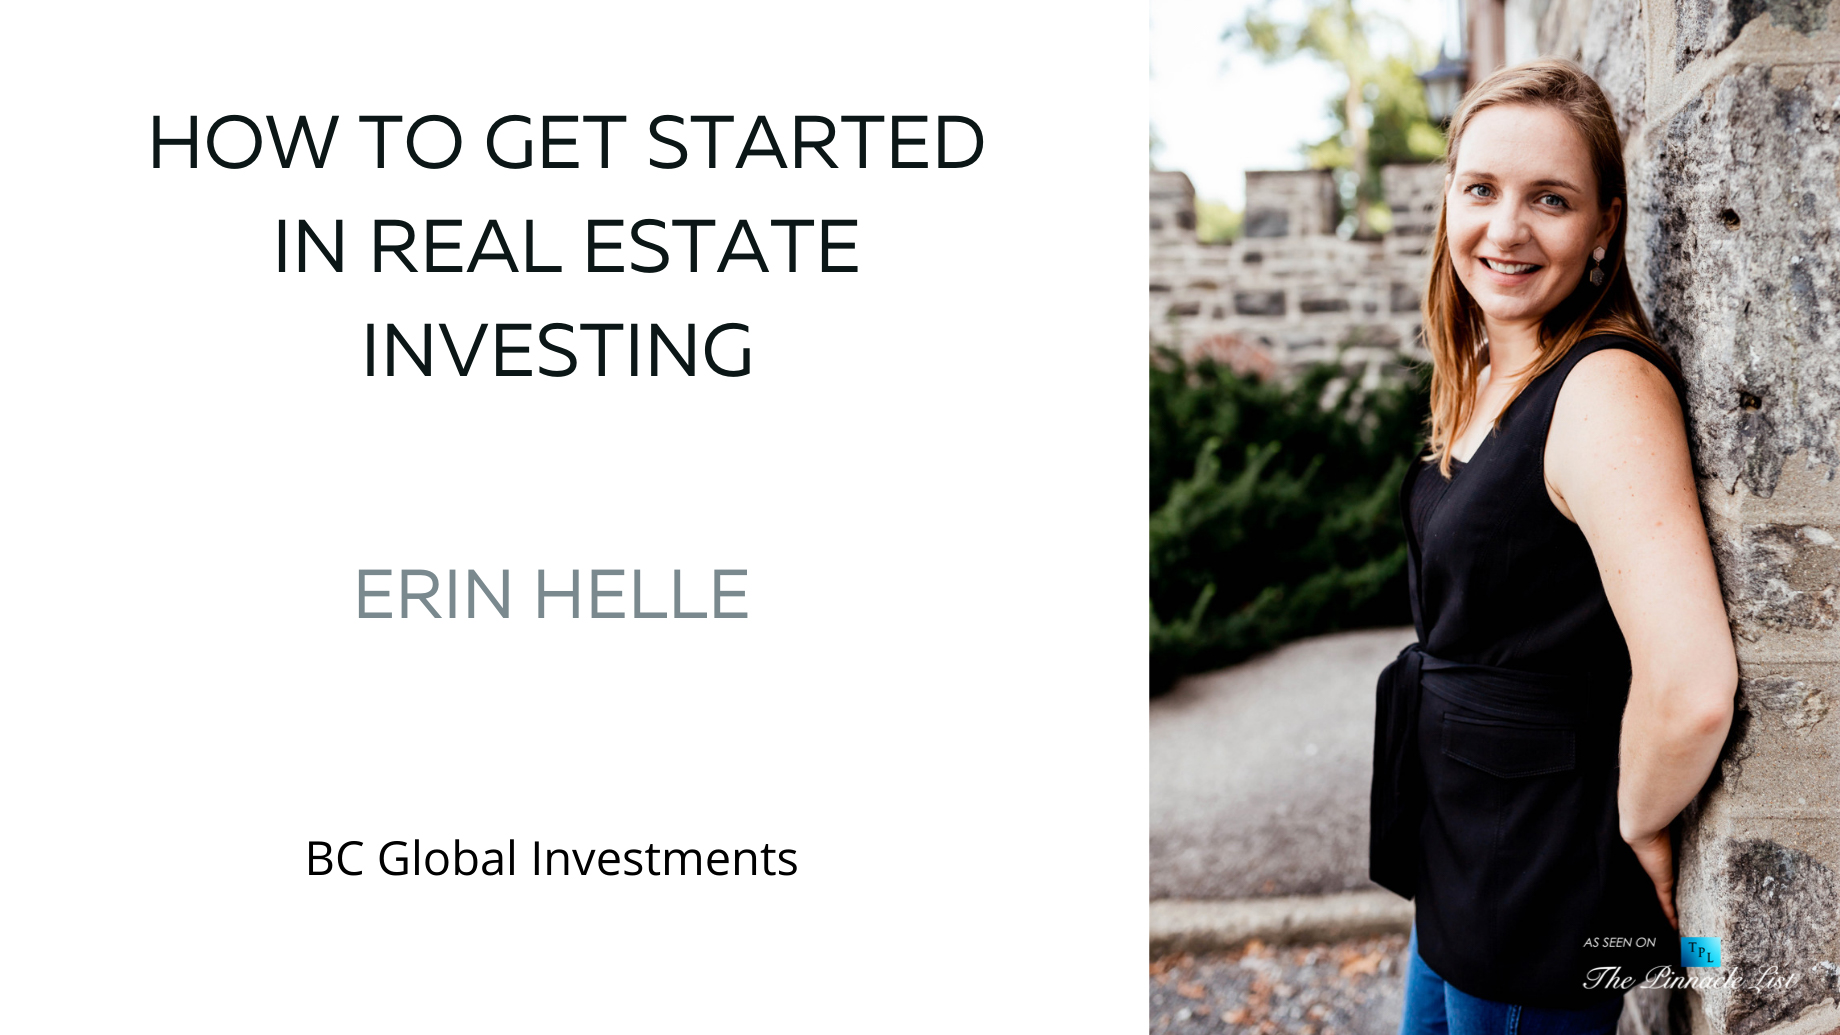 How To Get Started In Real Estate Investing - Erin Helle of BC Global Investments